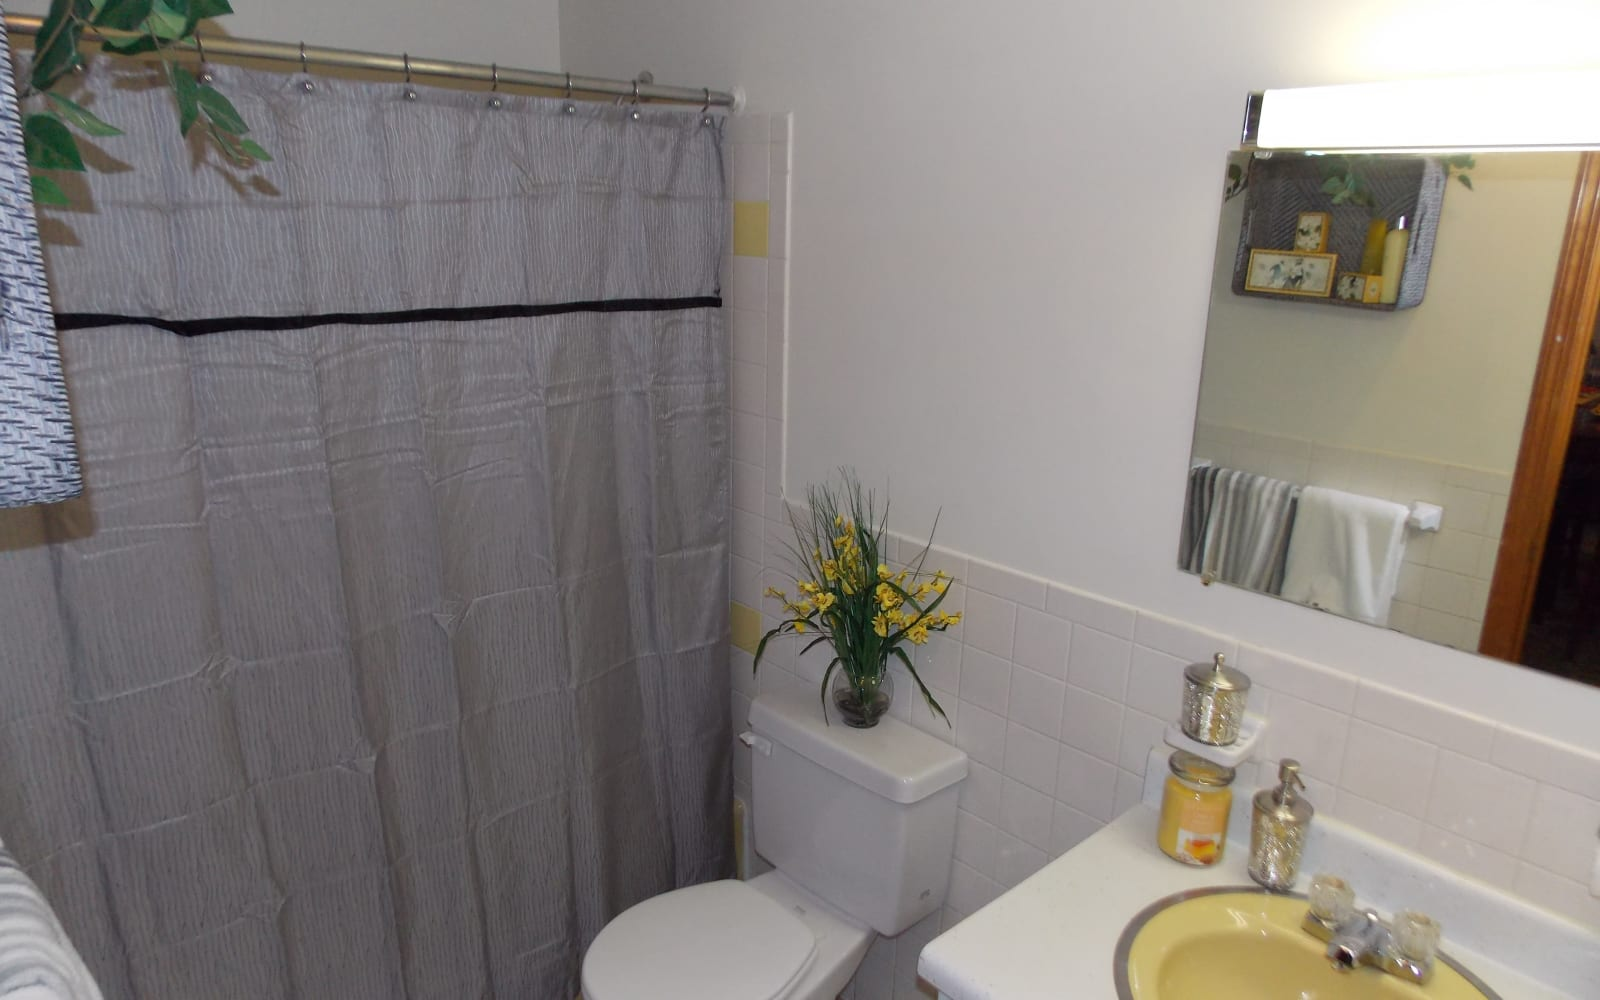 Clean, modern bathrooms at Westgate Arms Apartments in Salem, New Hampshire